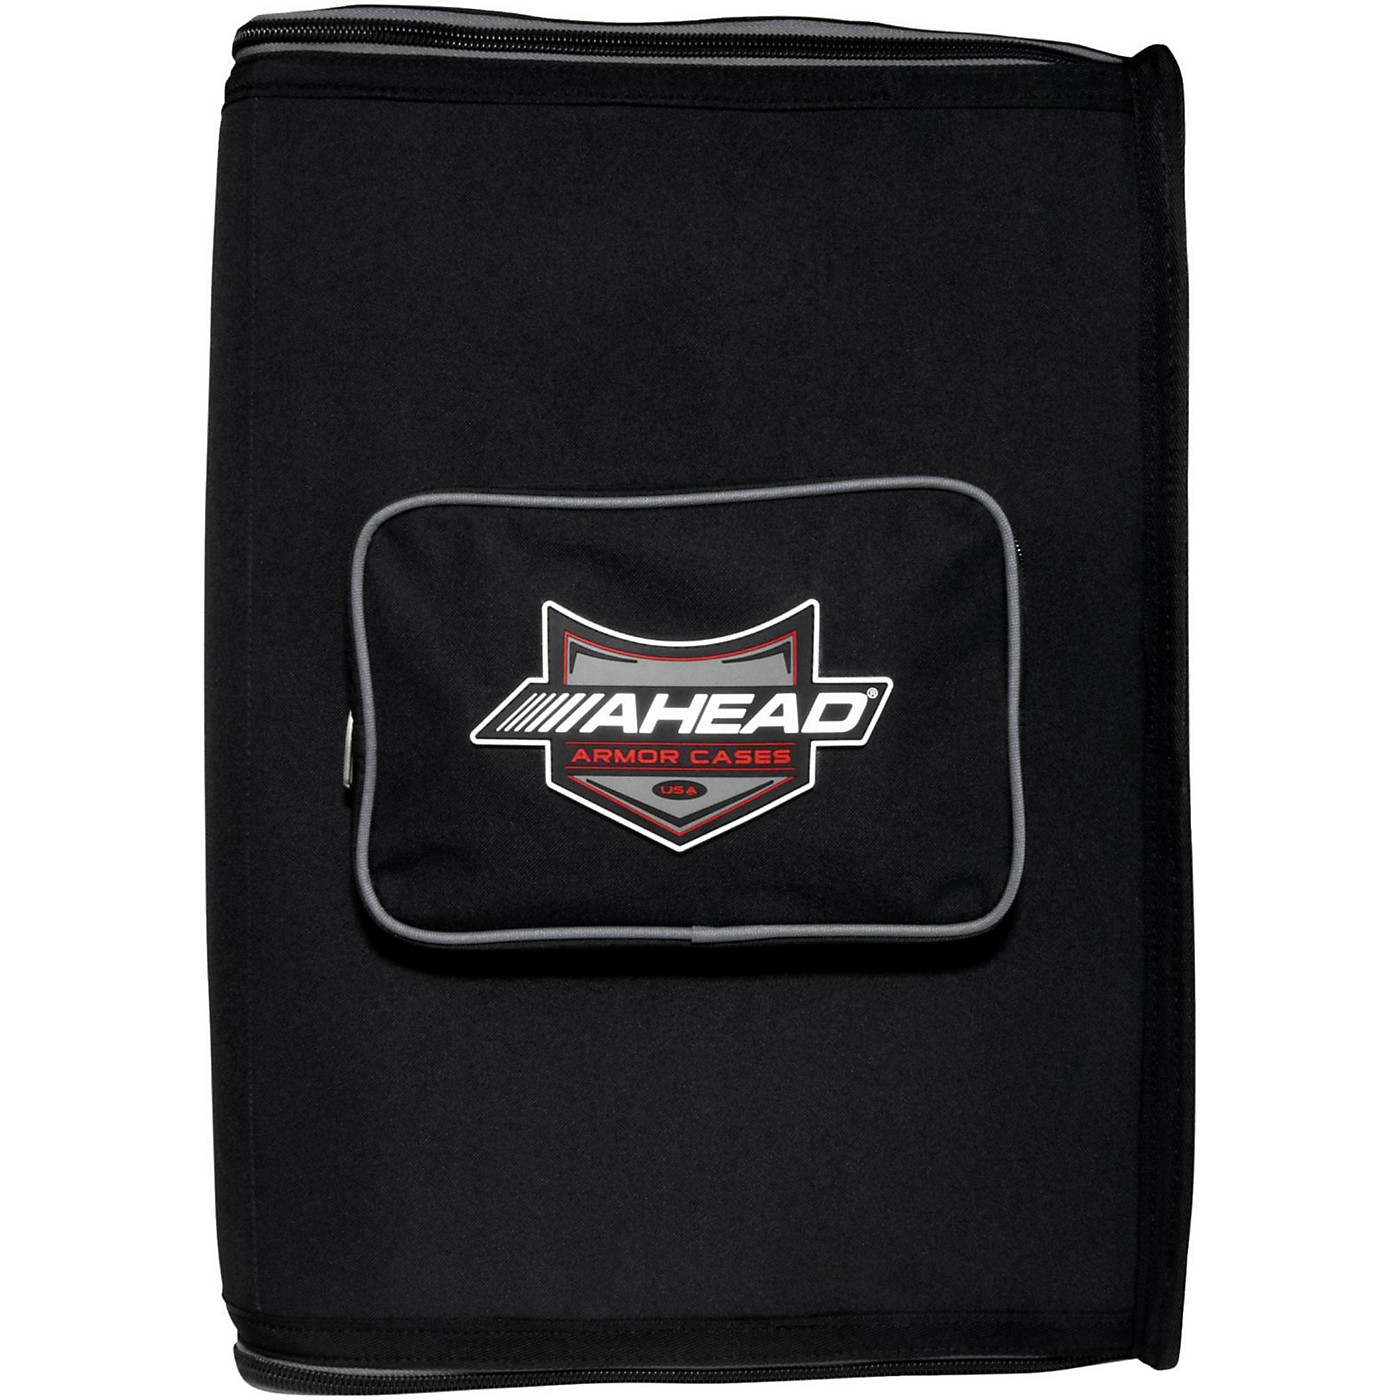 Ahead Armor Cases Cajon Case Deluxe with Shoulder Strap thumbnail